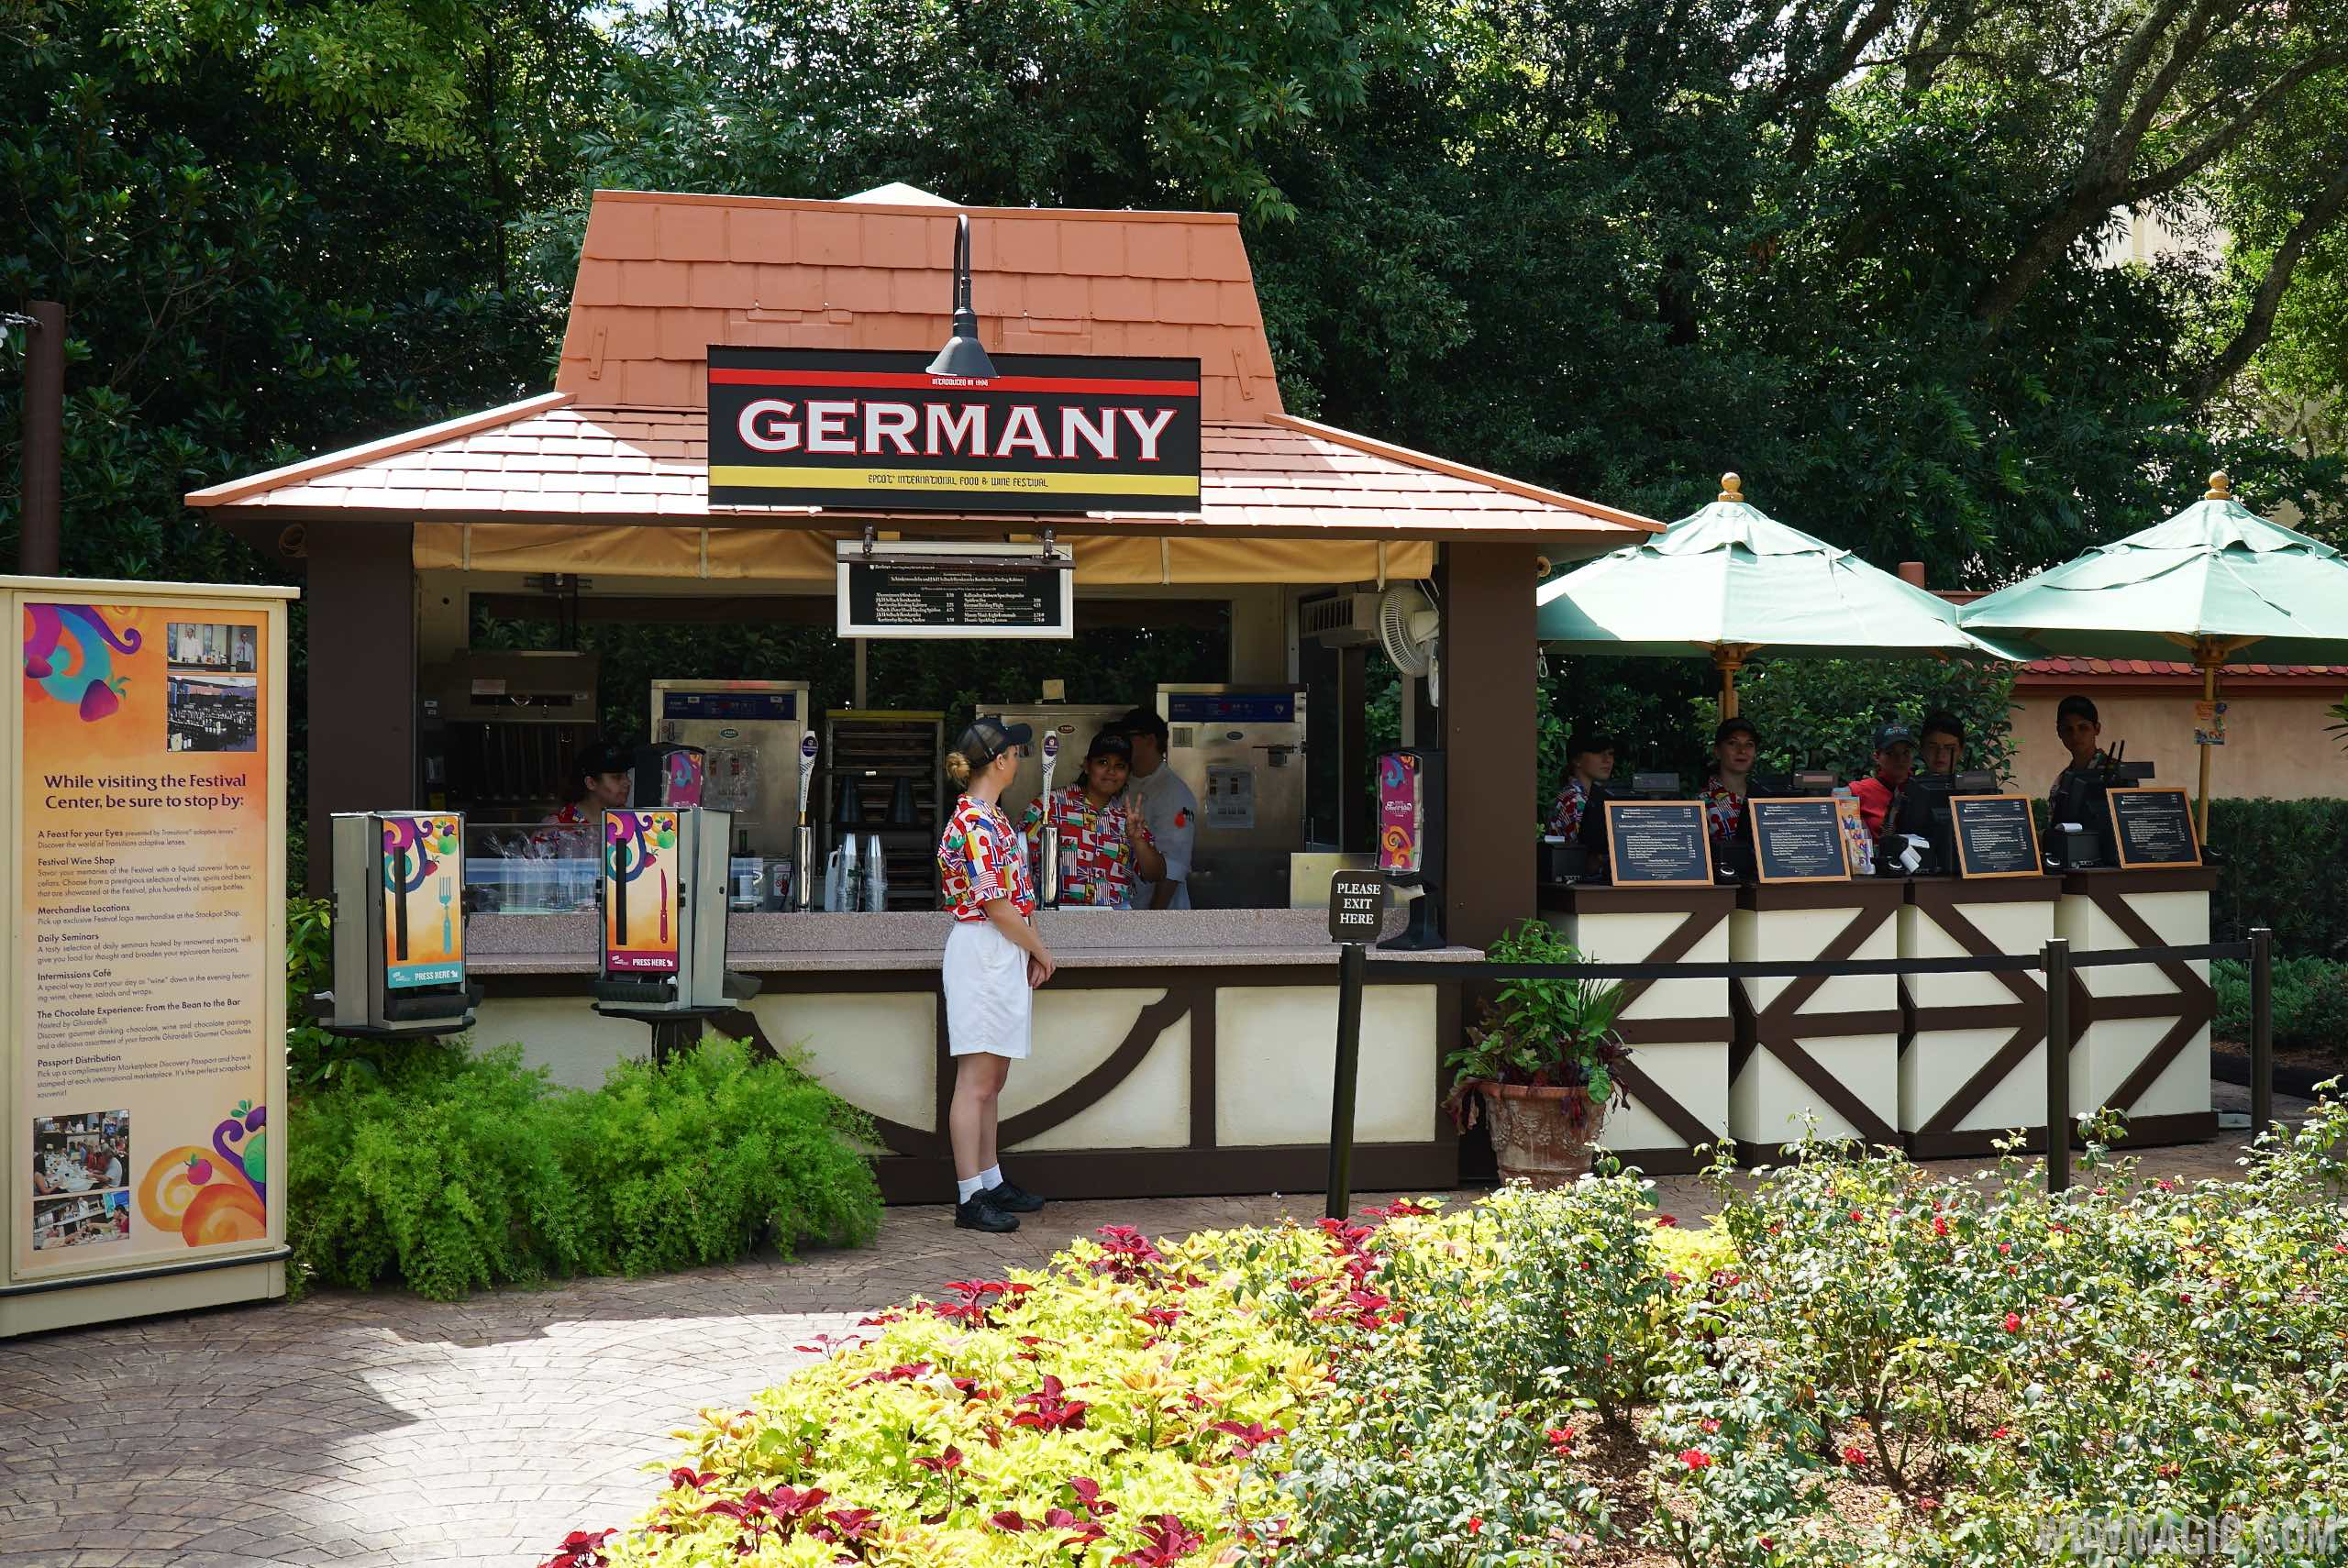 Germany Food and Wine kiosk